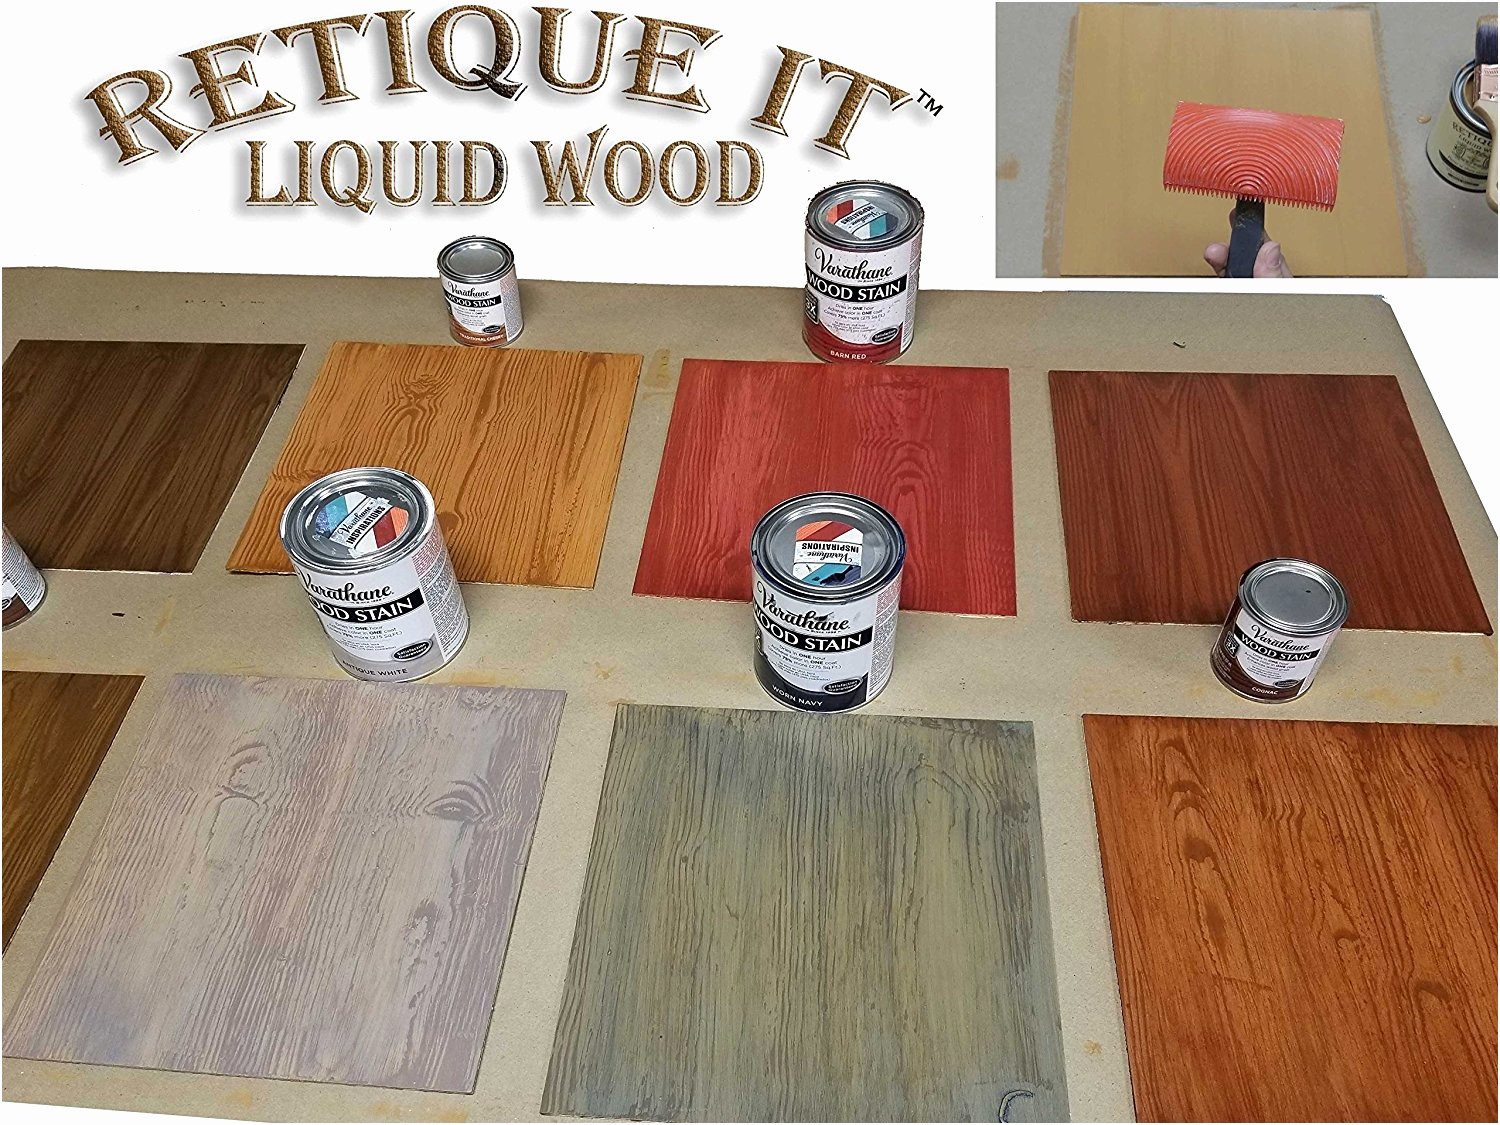 direction for hardwood flooring of wood floorings in netherlands archives wlcu in wood flooring las vegas best of best buy flooring las vegas stock retique it liquid wood